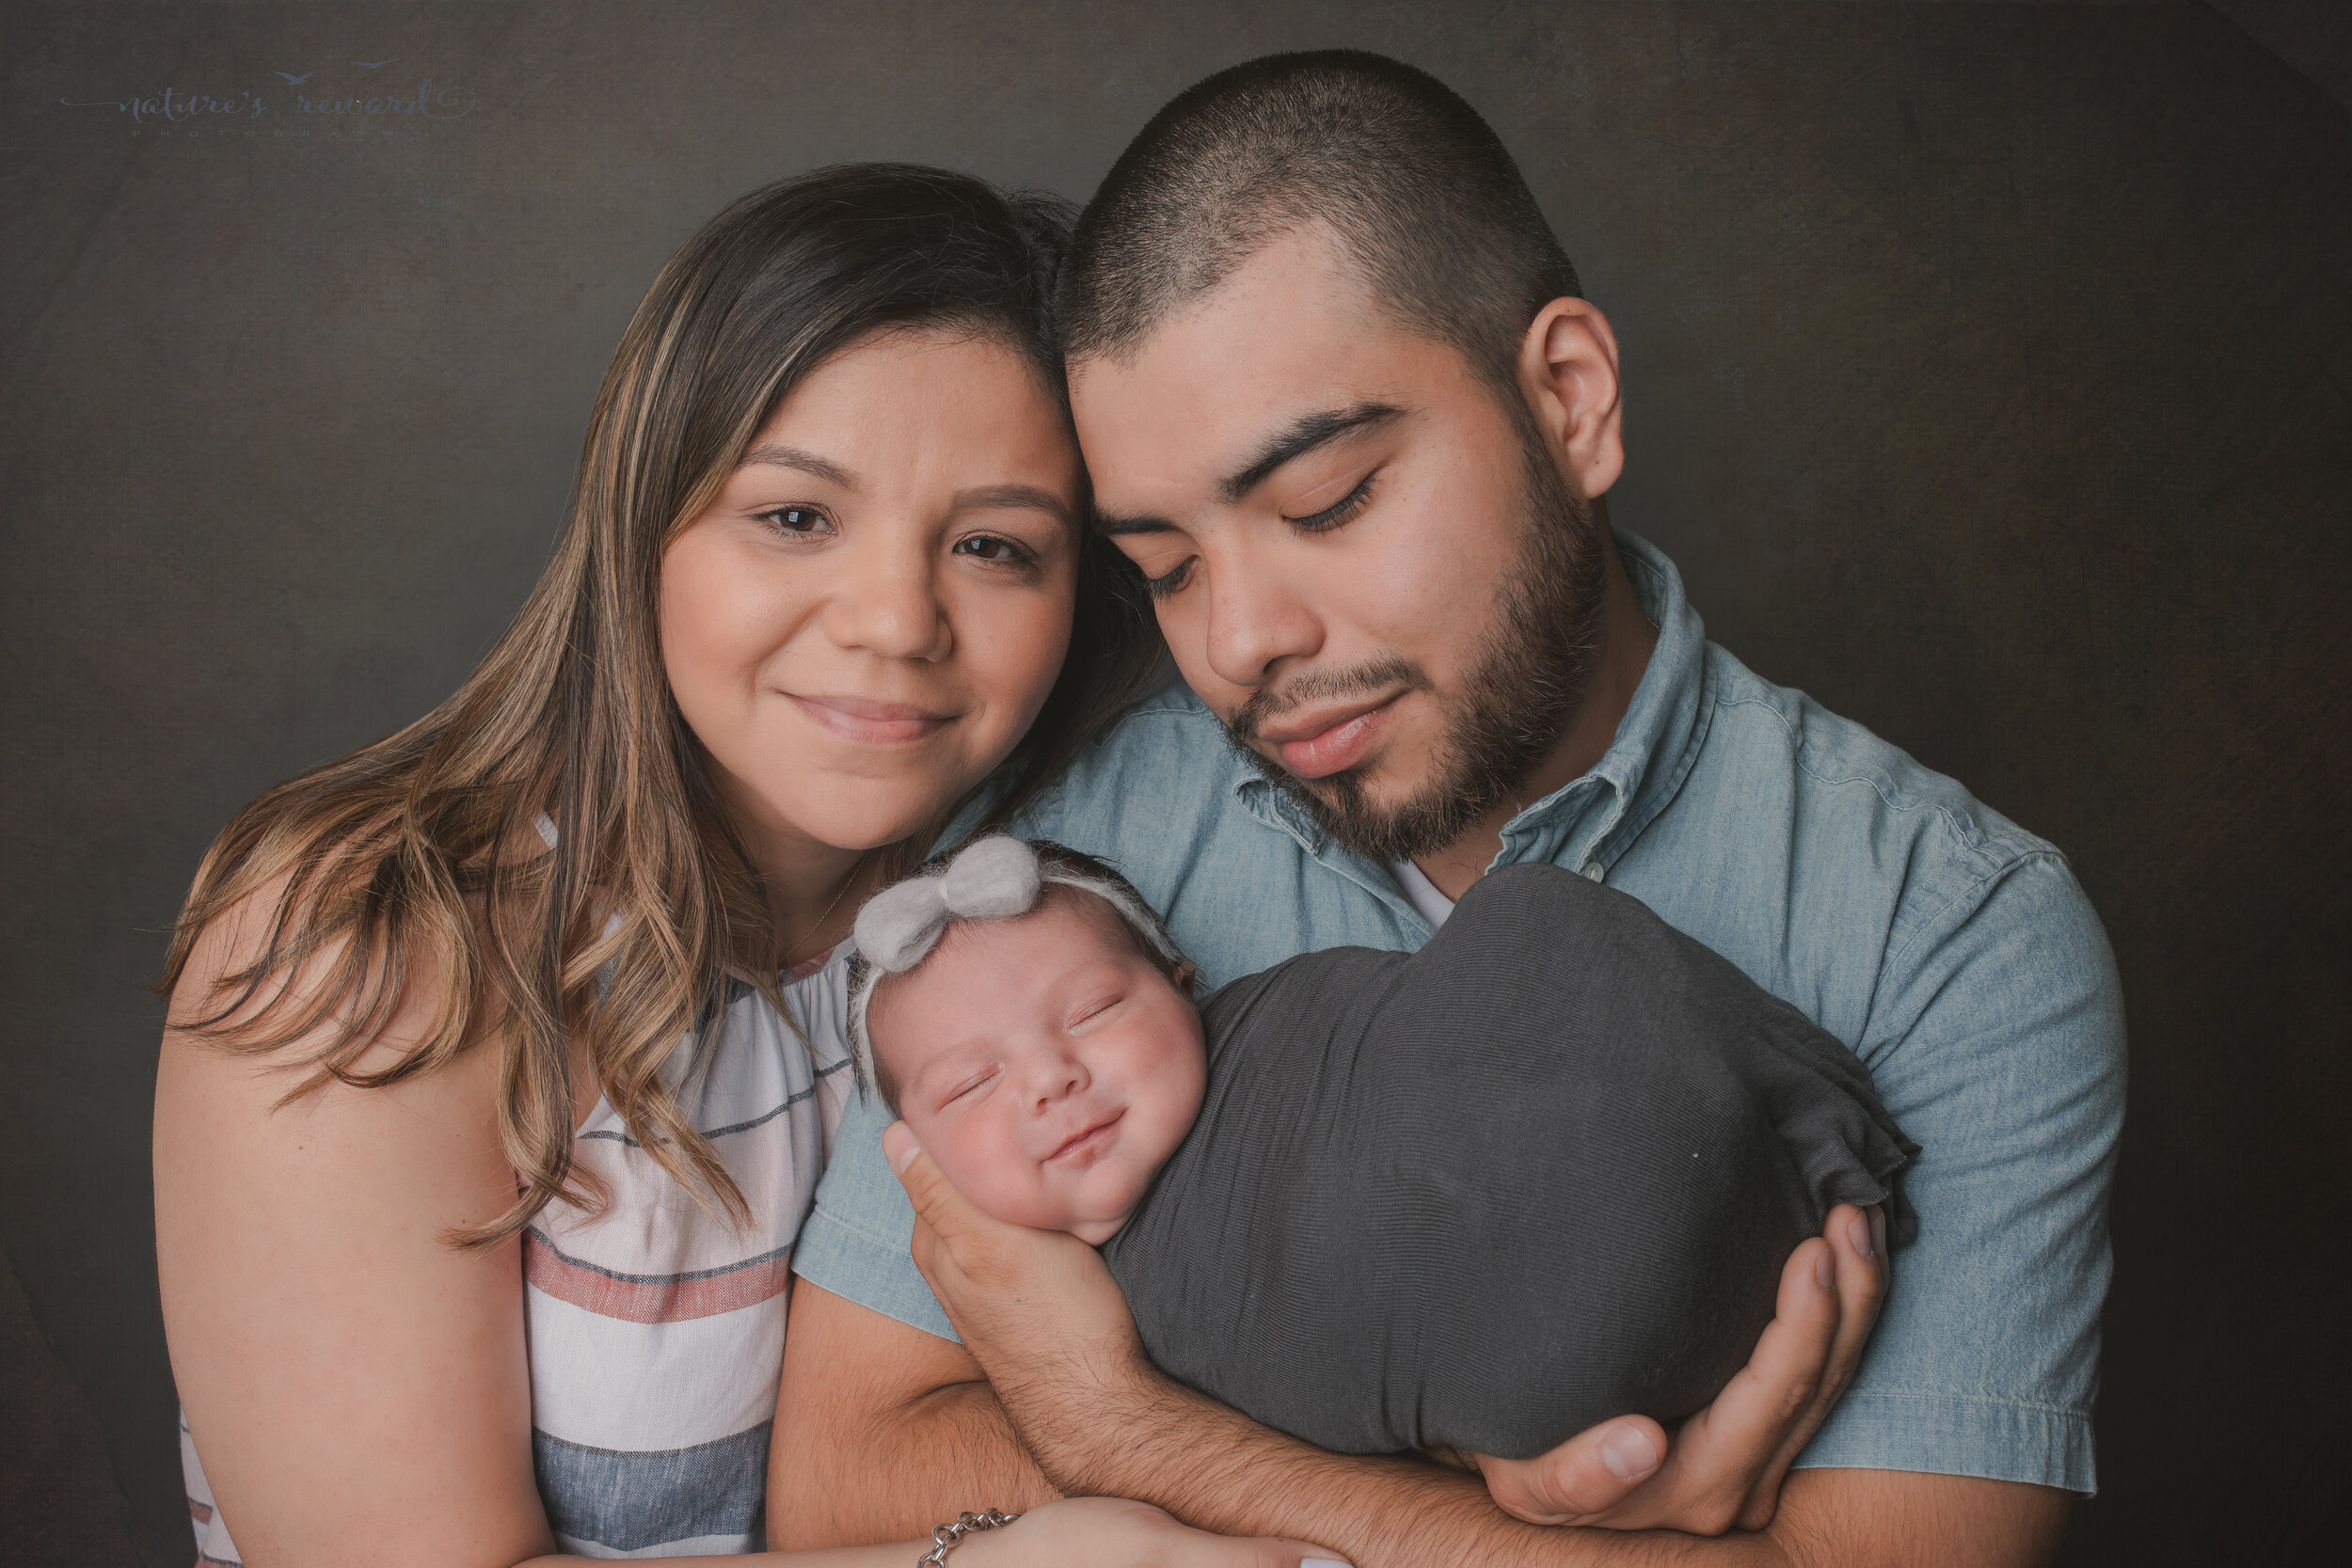 A newborn baby girl and her family in this portrait by Nature's Reward Photography